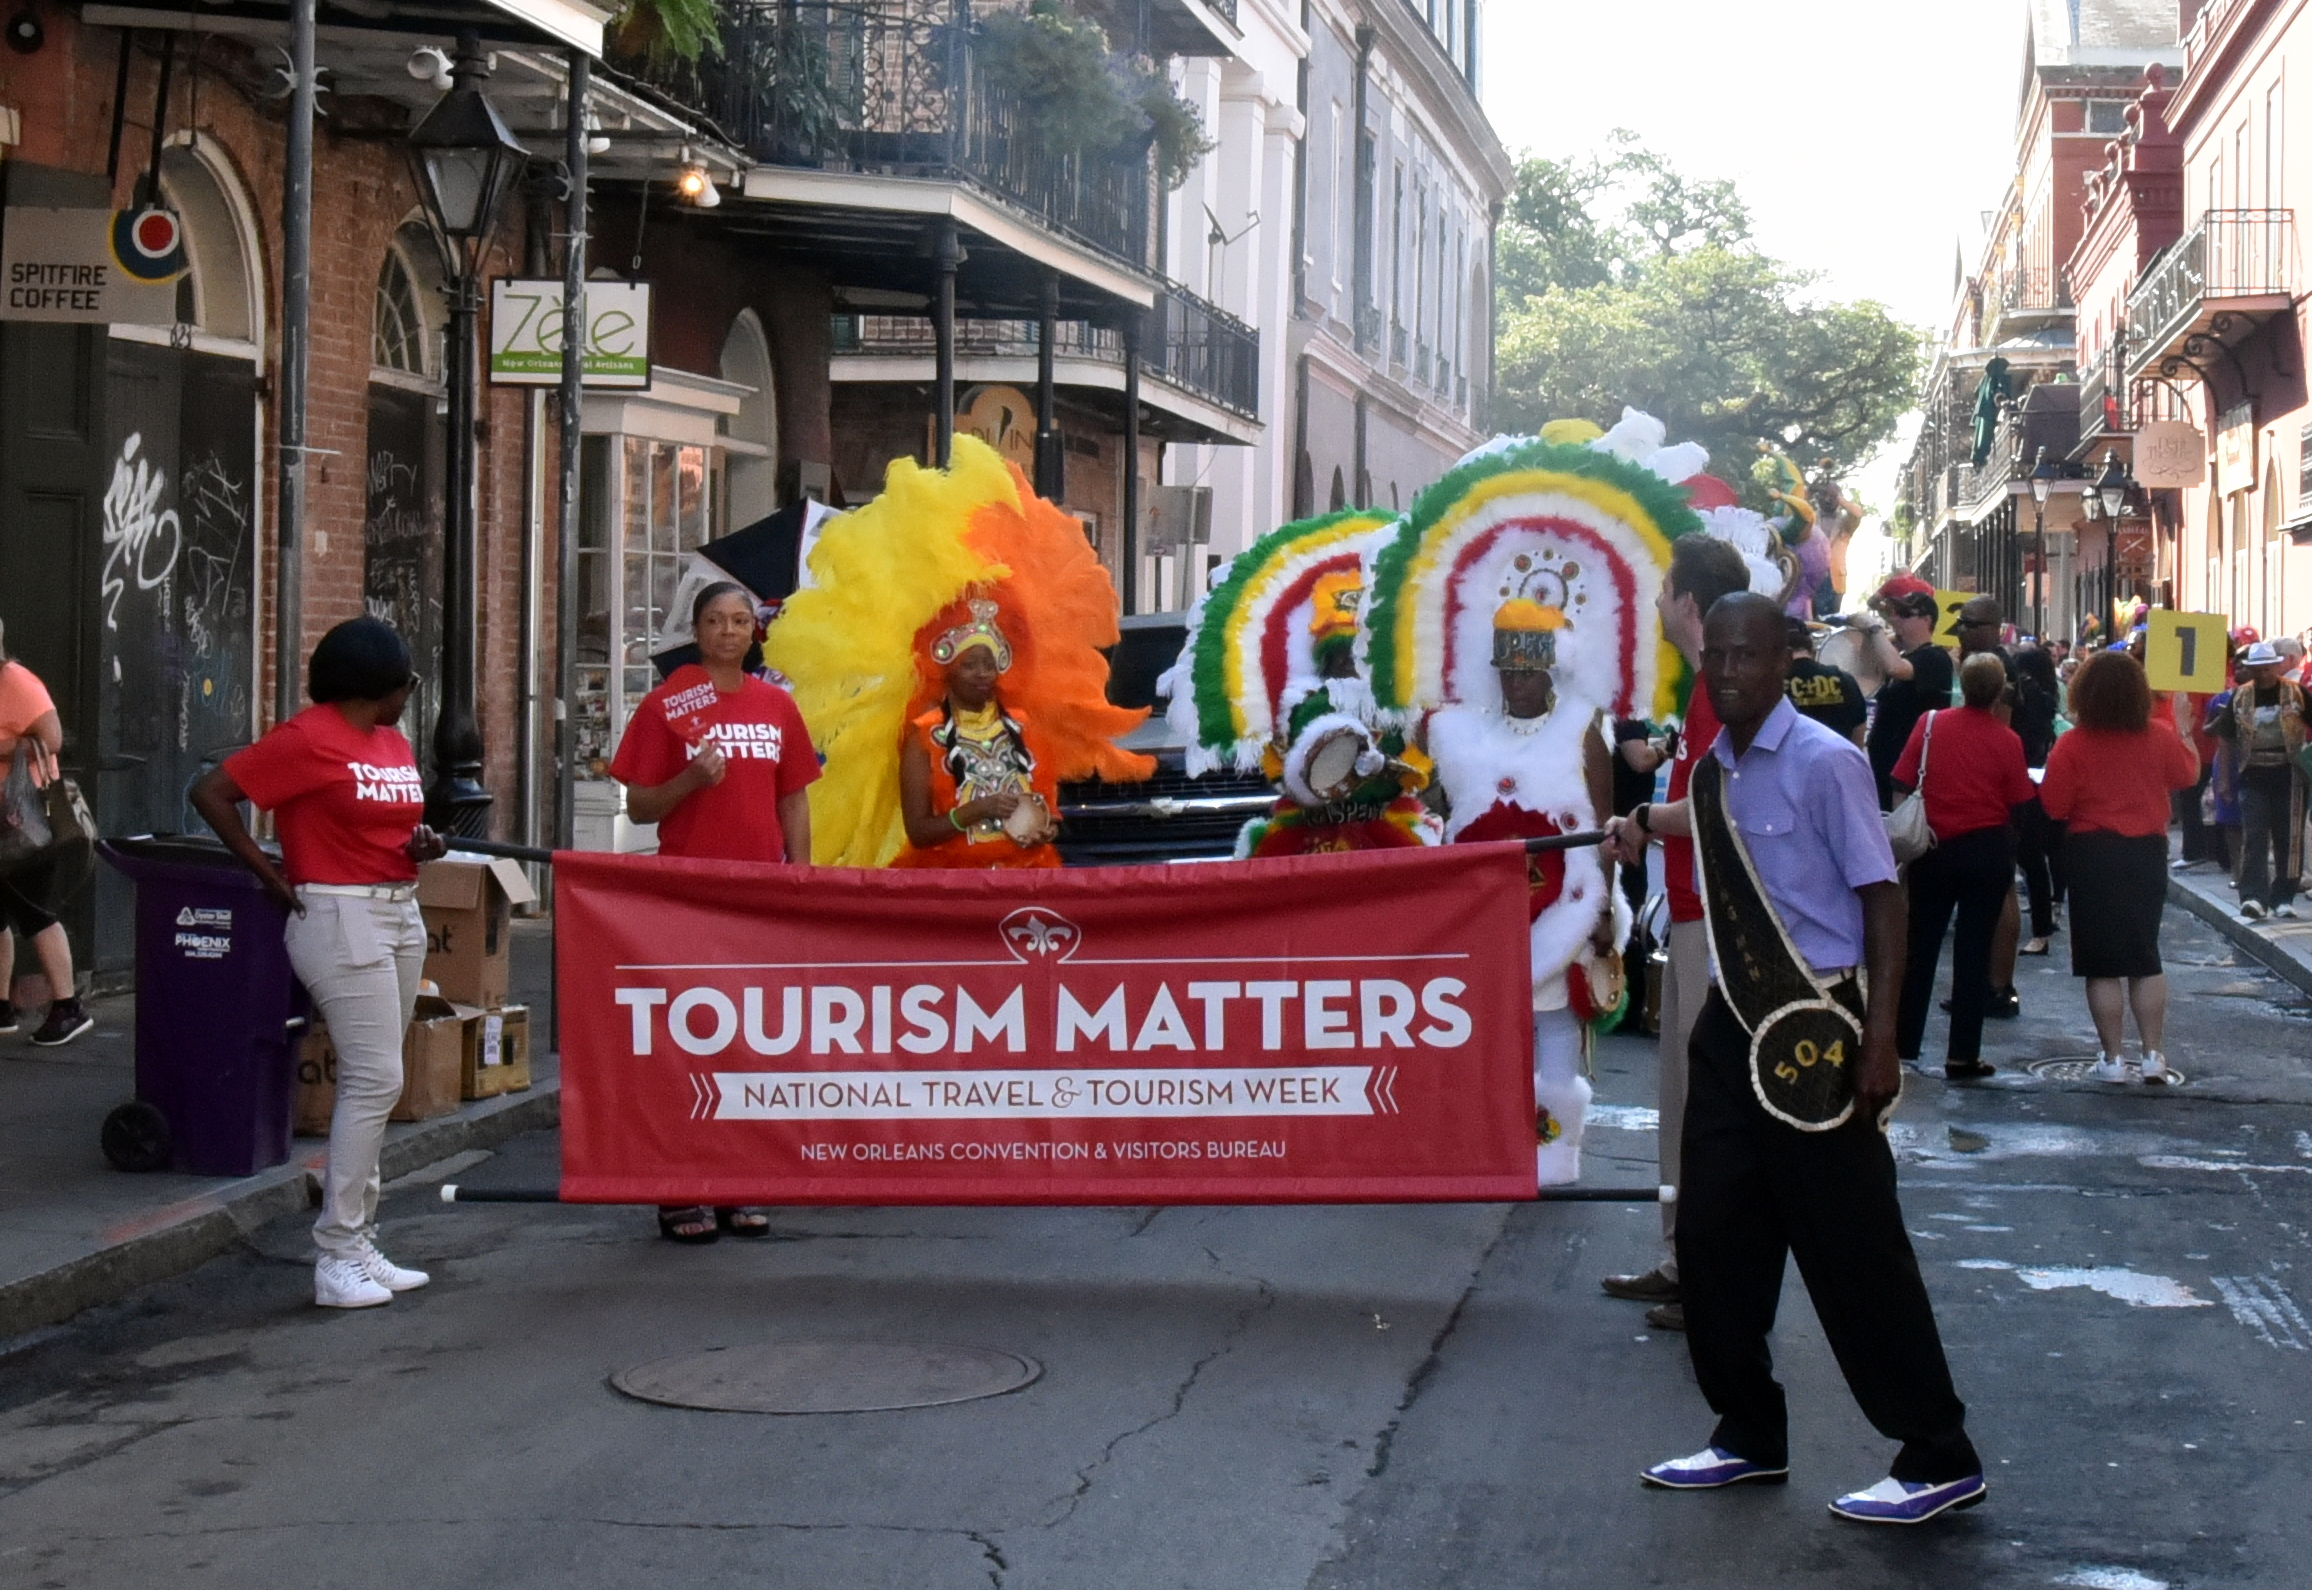 National travel and tourism week may  new orleans